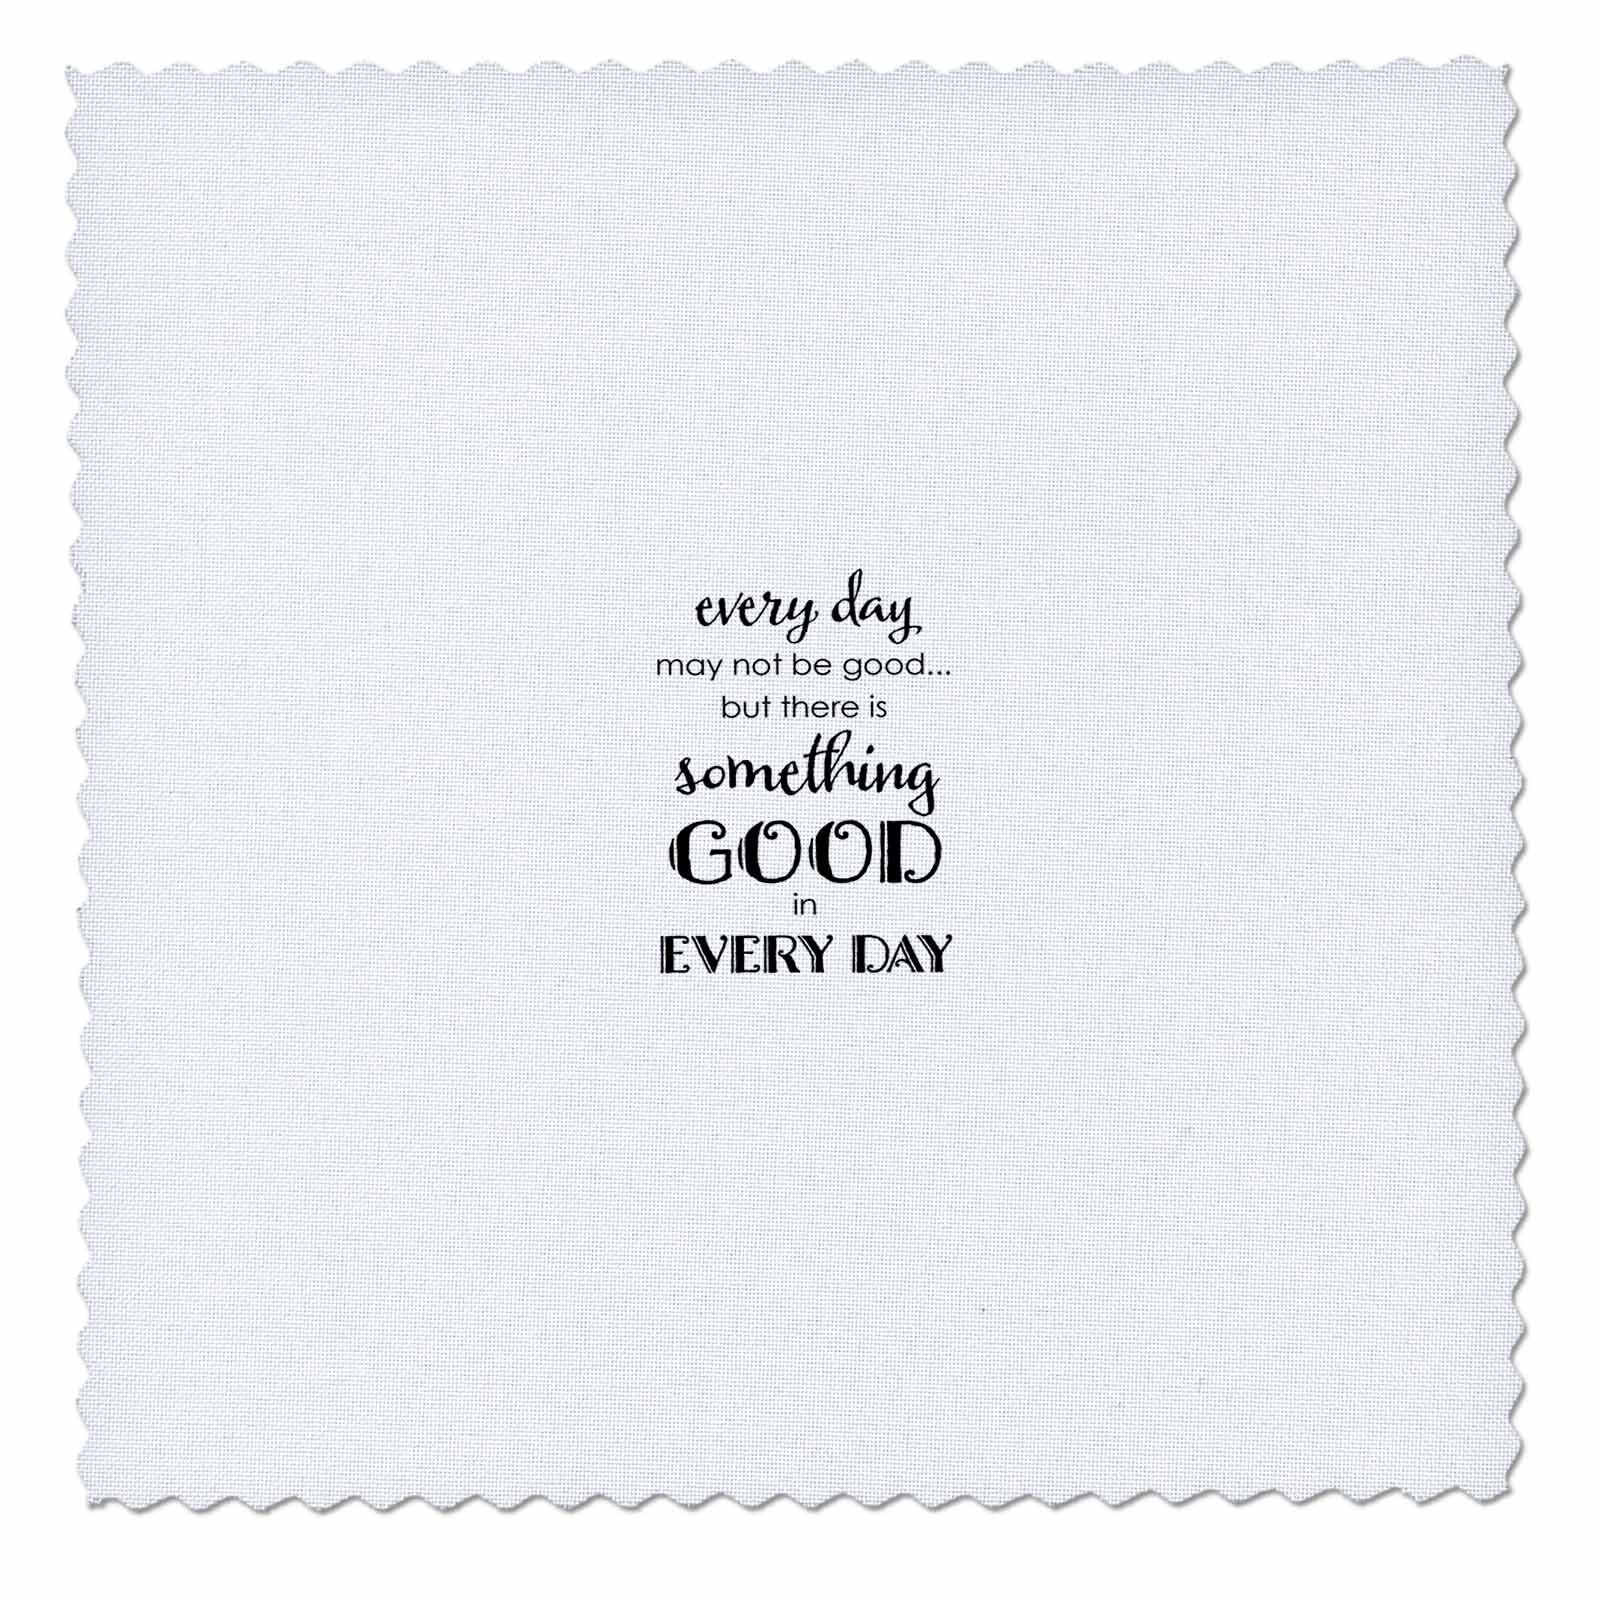 3dRose Uta Naumann Sayings and Typography - Bible Proverb Motivational Typography - Something Good In Every Day - 12x12 inch quilt square (qs_275144_4) by 3dRose